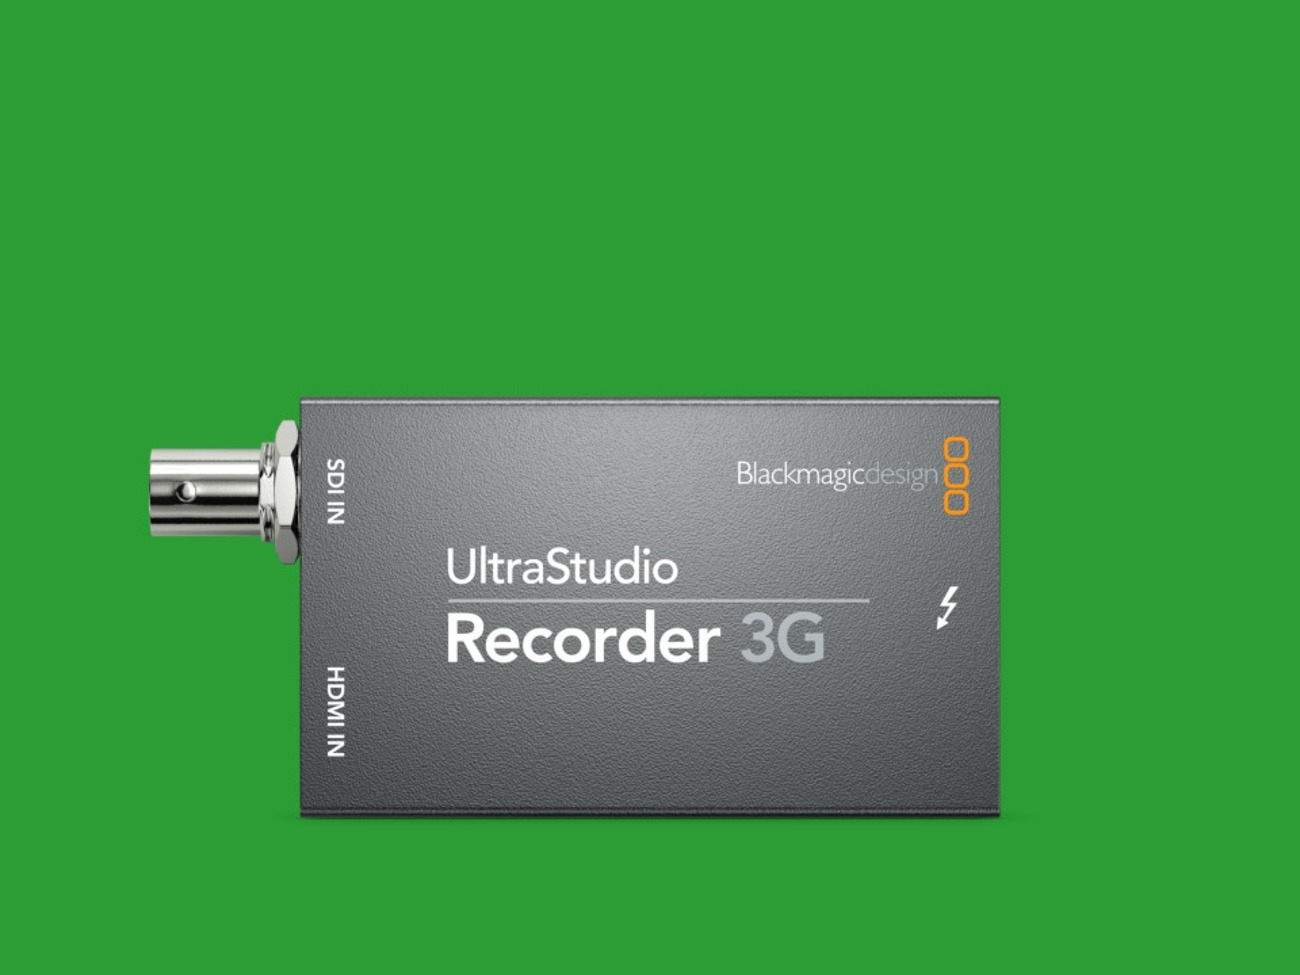 Rent Ultrastudio Recorder 3g Sdi Hdmi With Thunderbolt 3 Cable Bmd Mini Recorder In Croydon Rent For 16 00 Day 14 00 Week